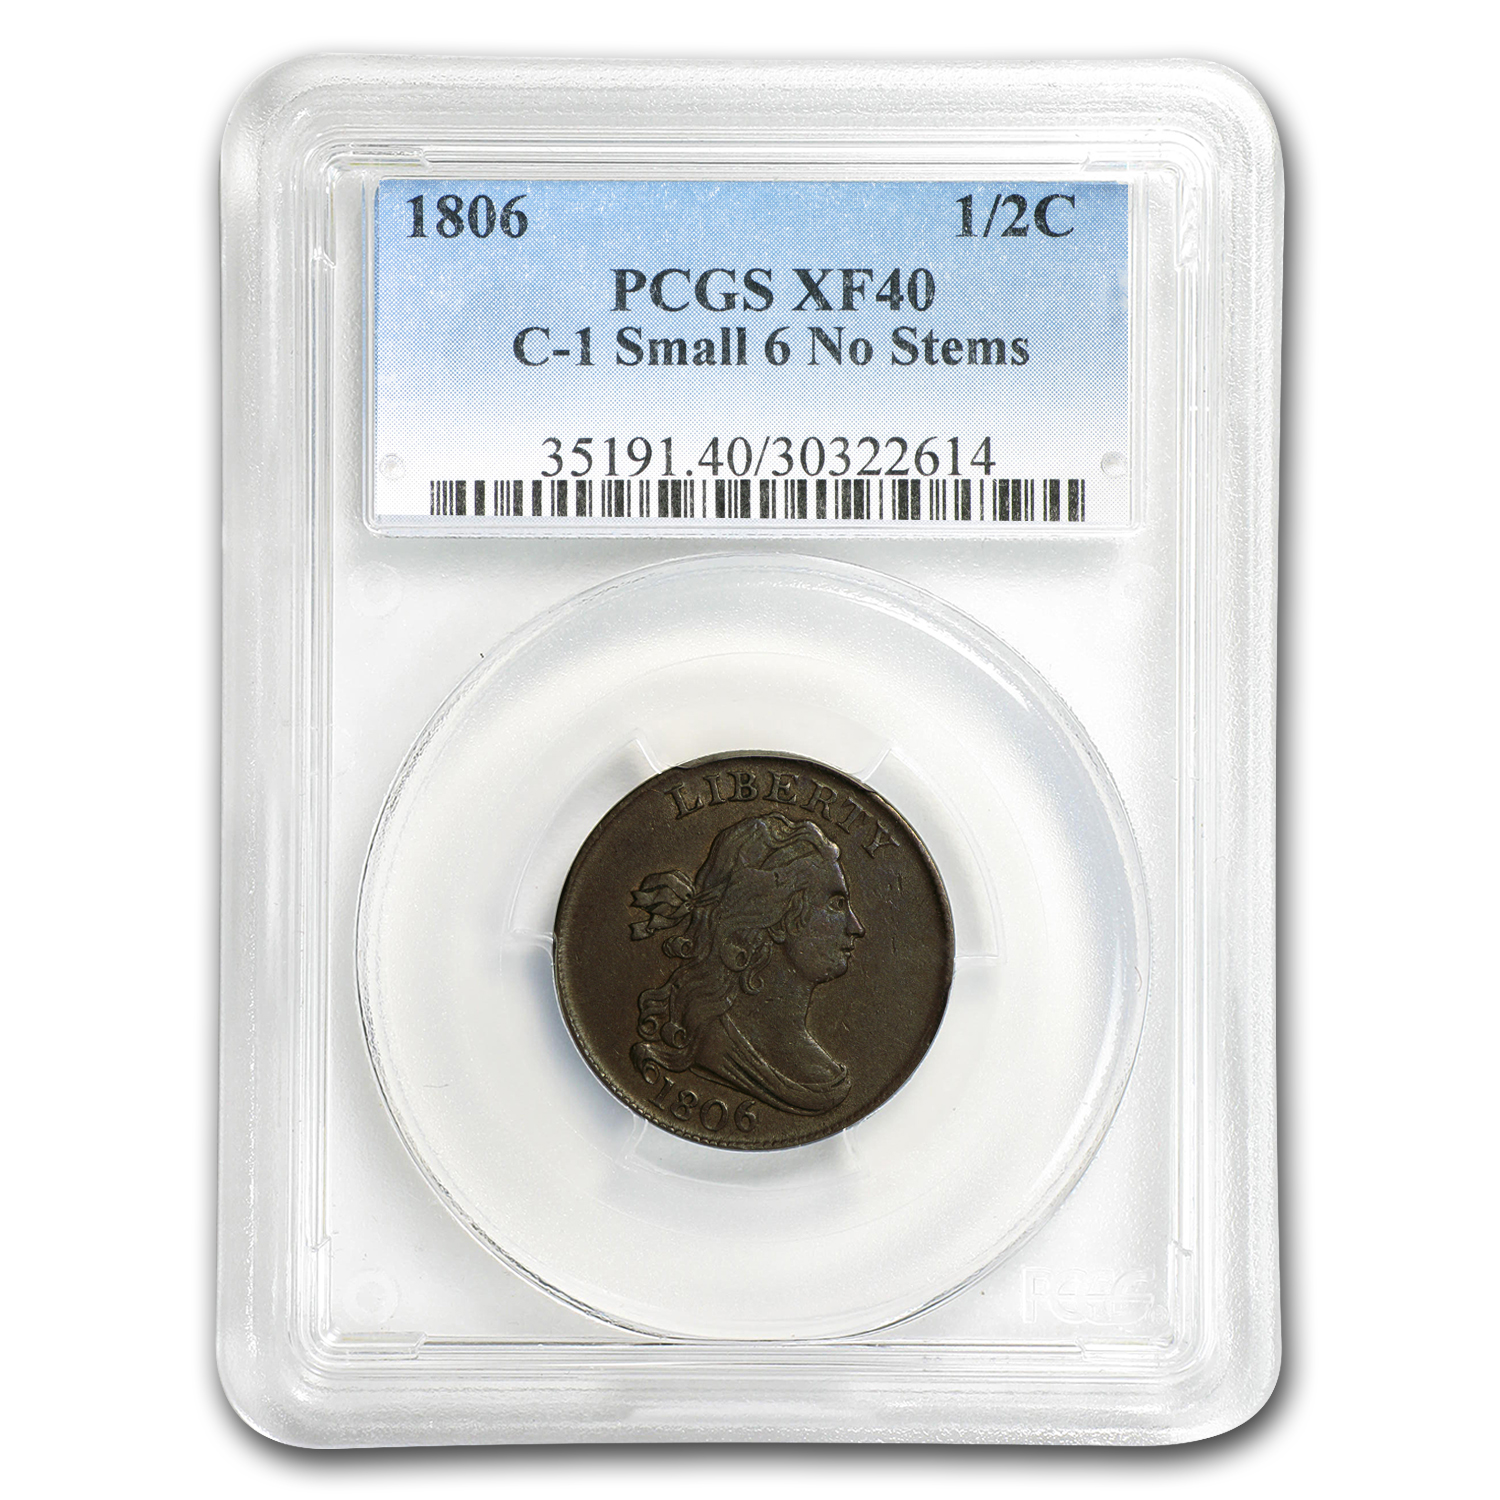 1806 Half Cent Small 6 Stemless XF-40 PCGS